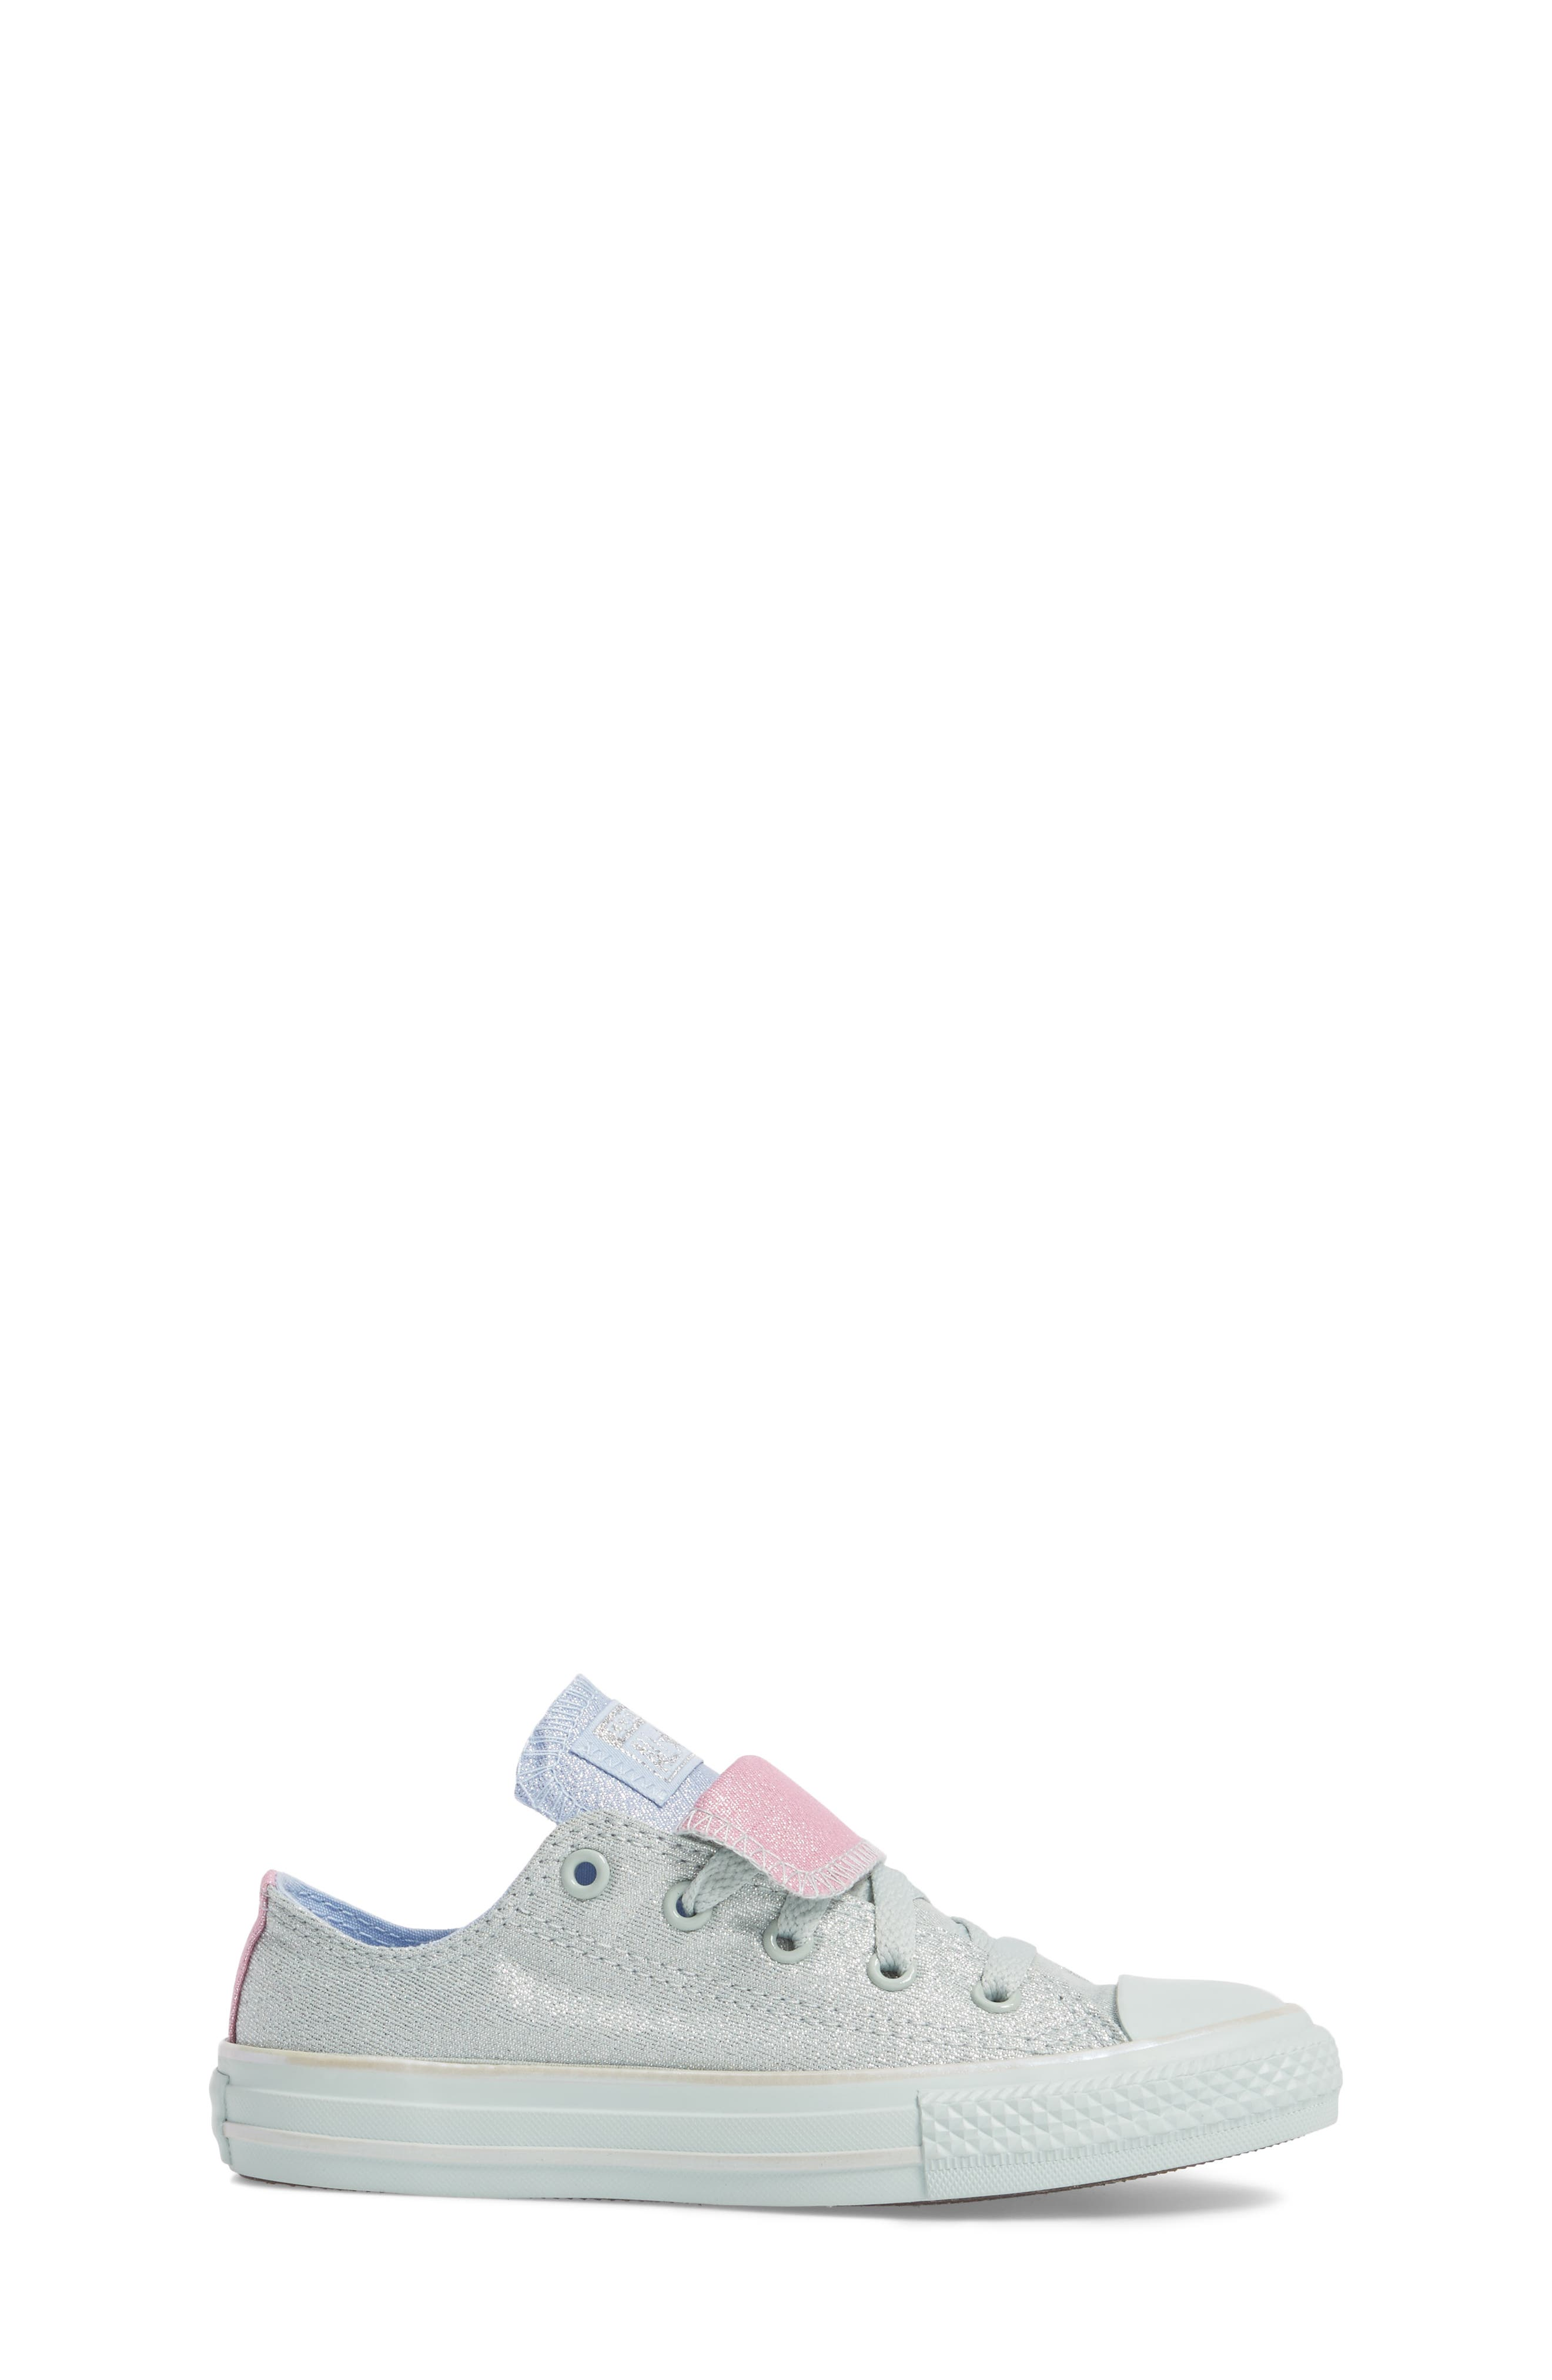 All Star<sup>®</sup> Shimmer Double Tongue Sneaker,                             Alternate thumbnail 3, color,                             301